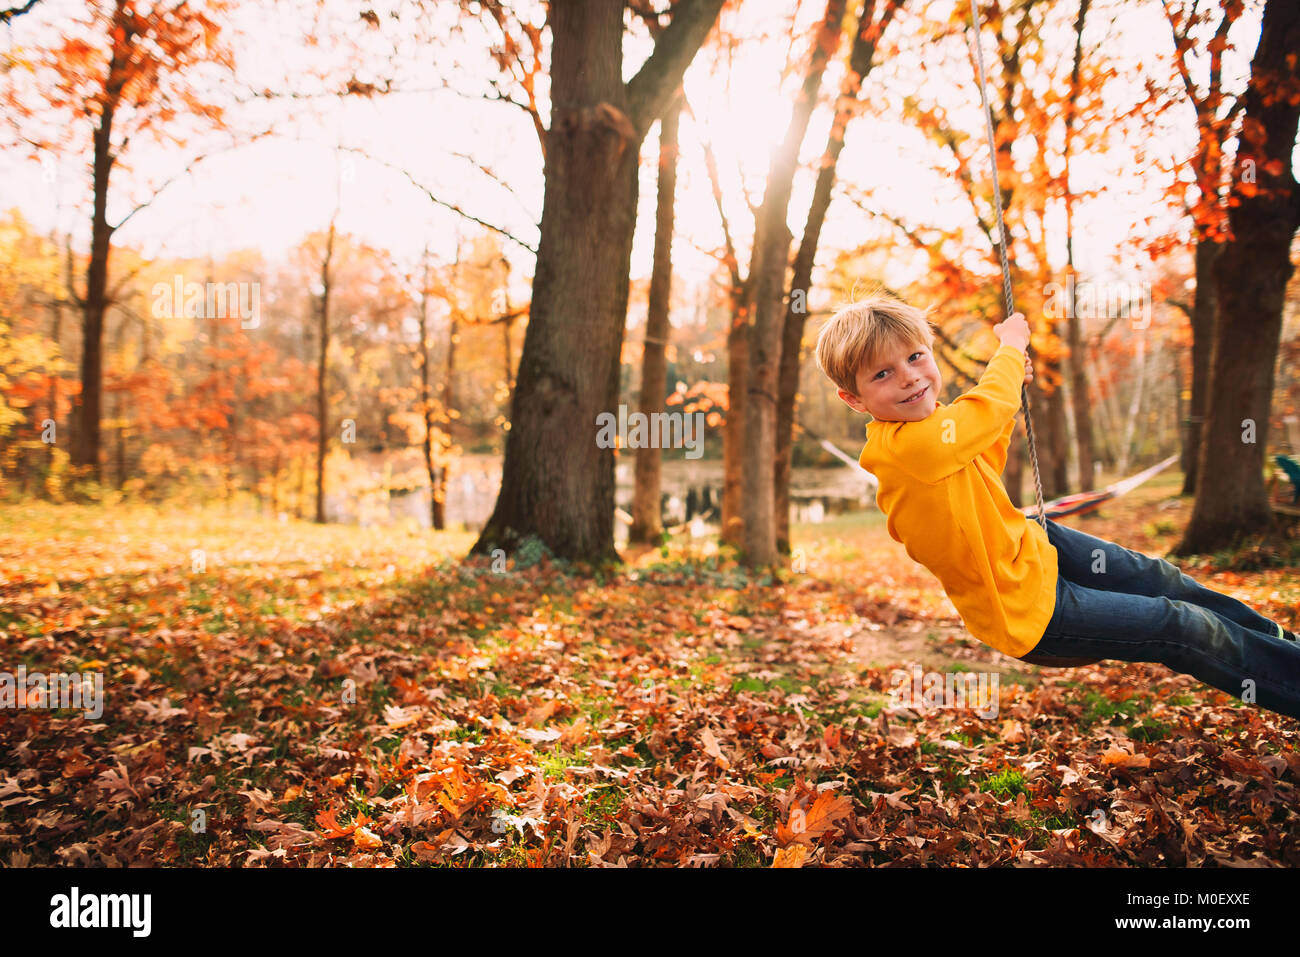 Boy sitting on a rope swing in the garden - Stock Image